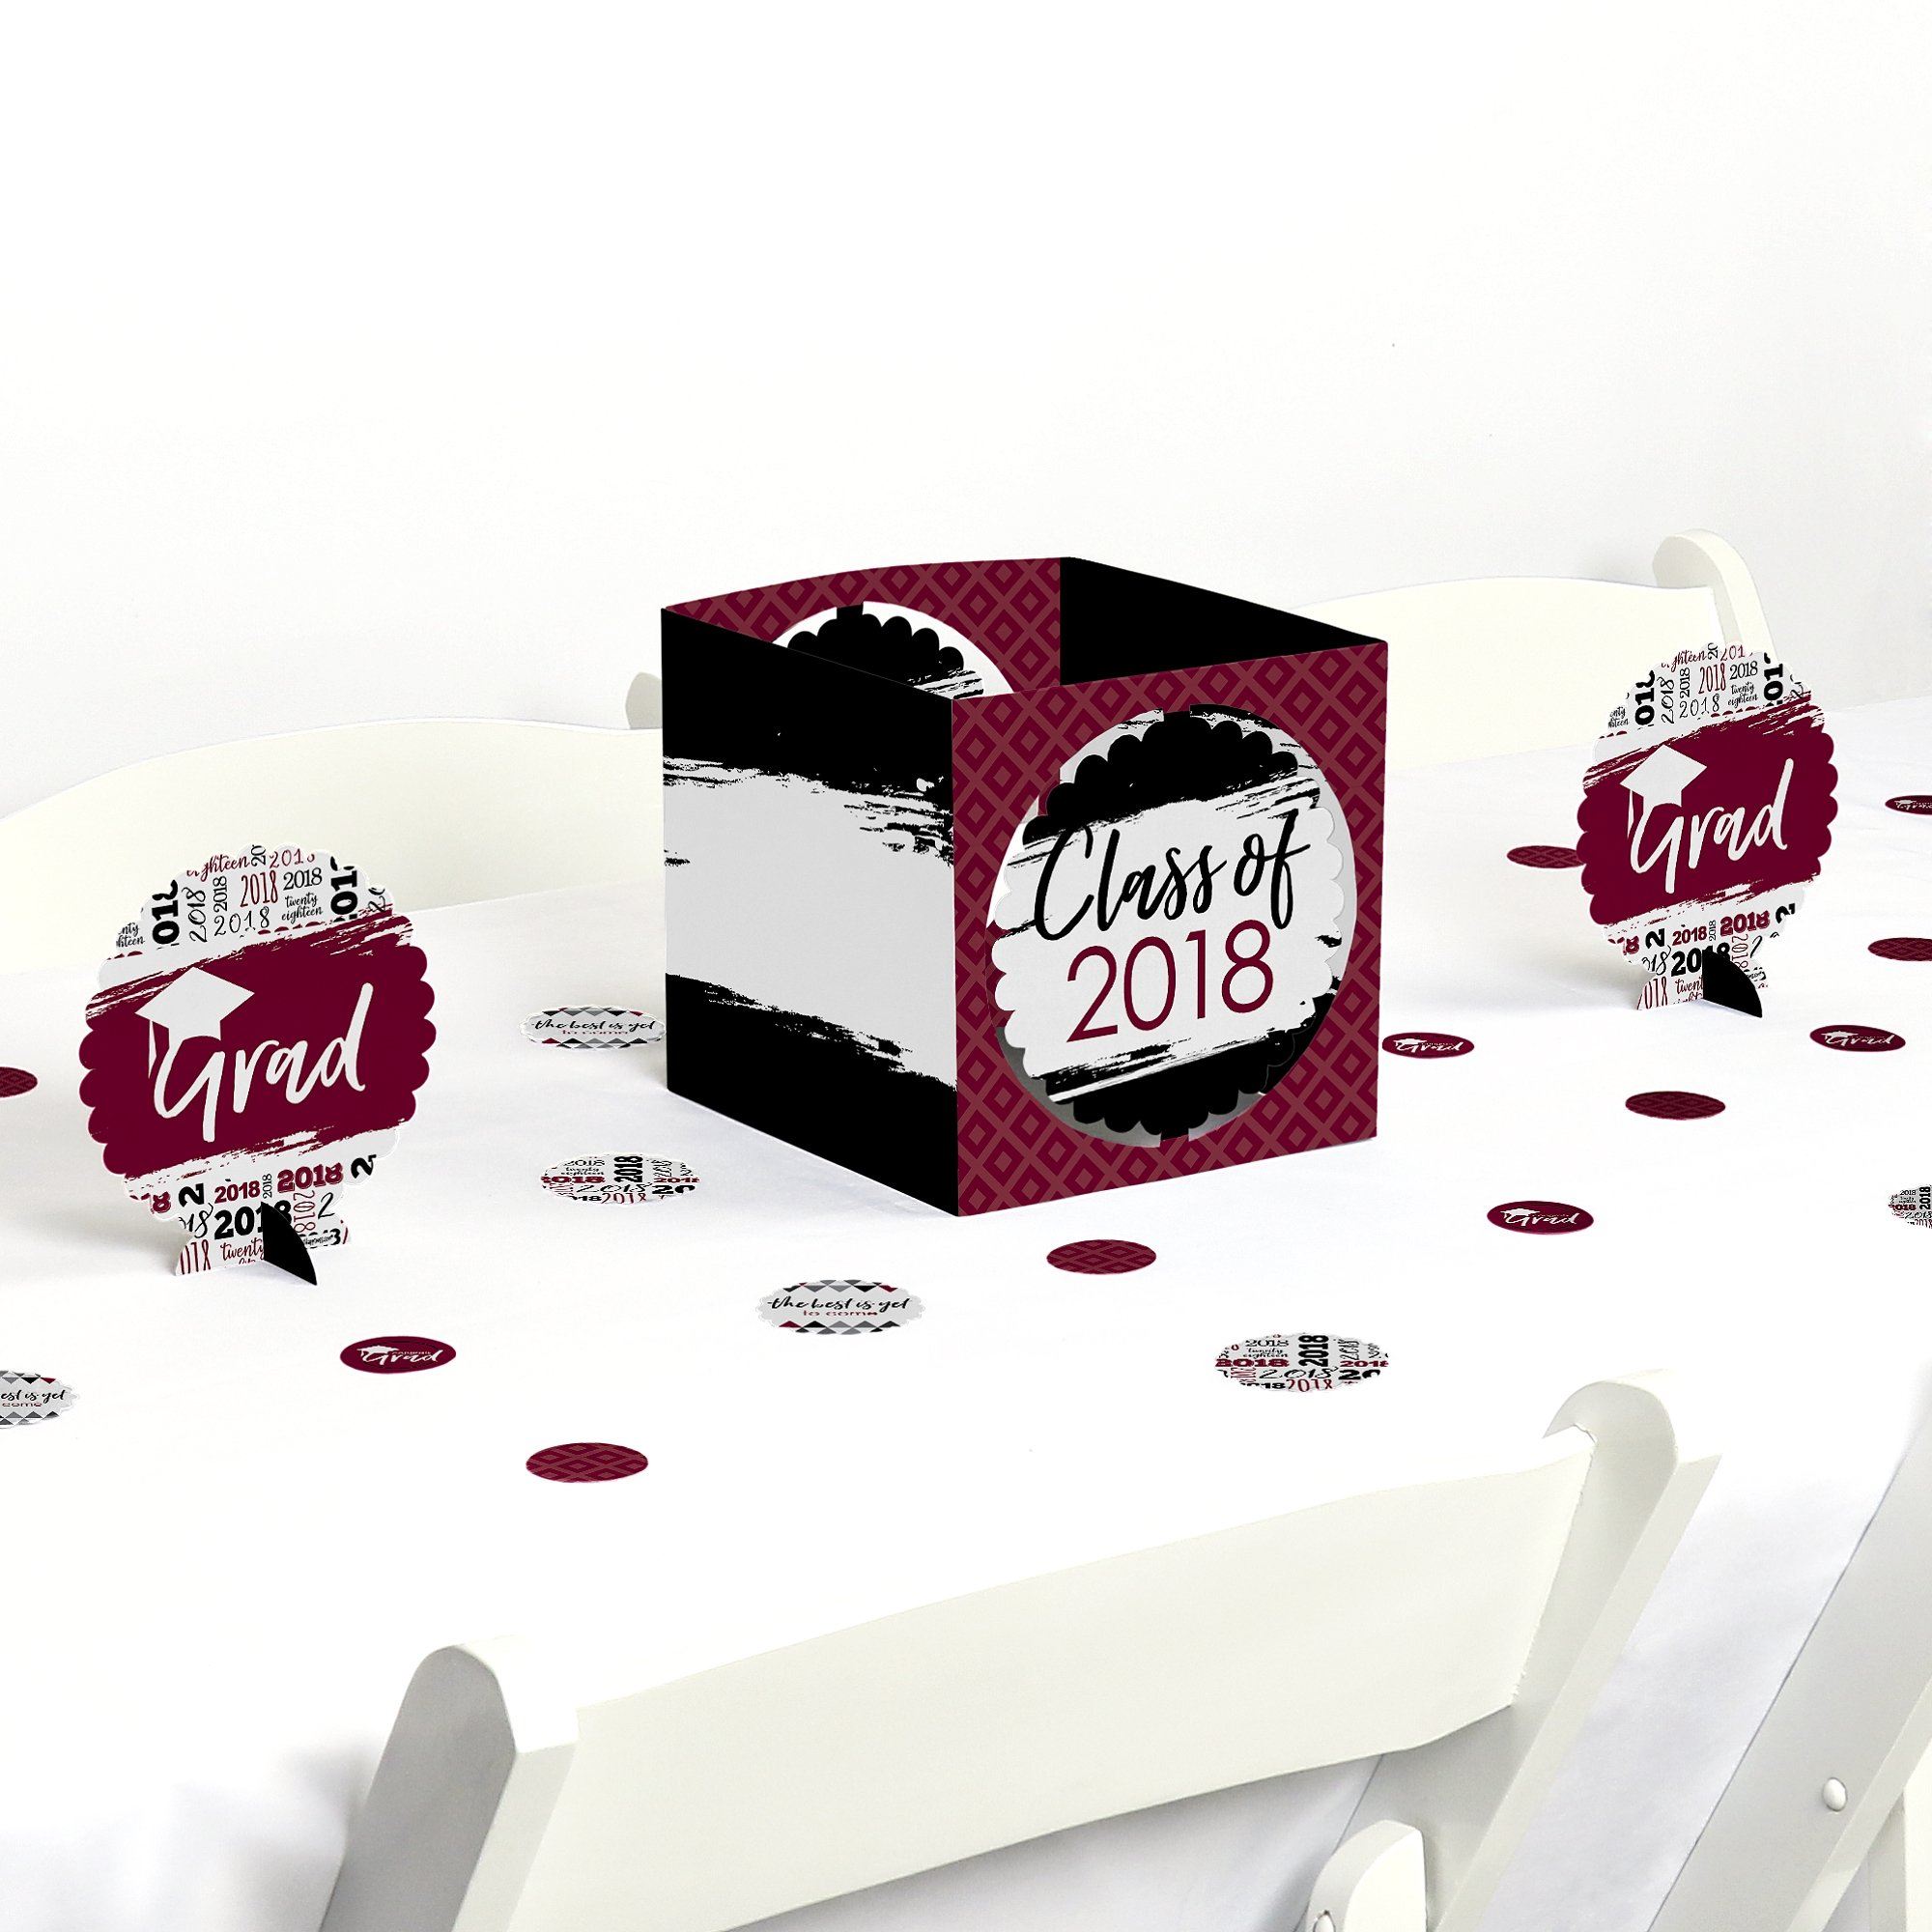 Maroon Grad - Best is Yet to Come - Burgundy 2018 Graduation Party Centerpiece & Table Decoration Kit